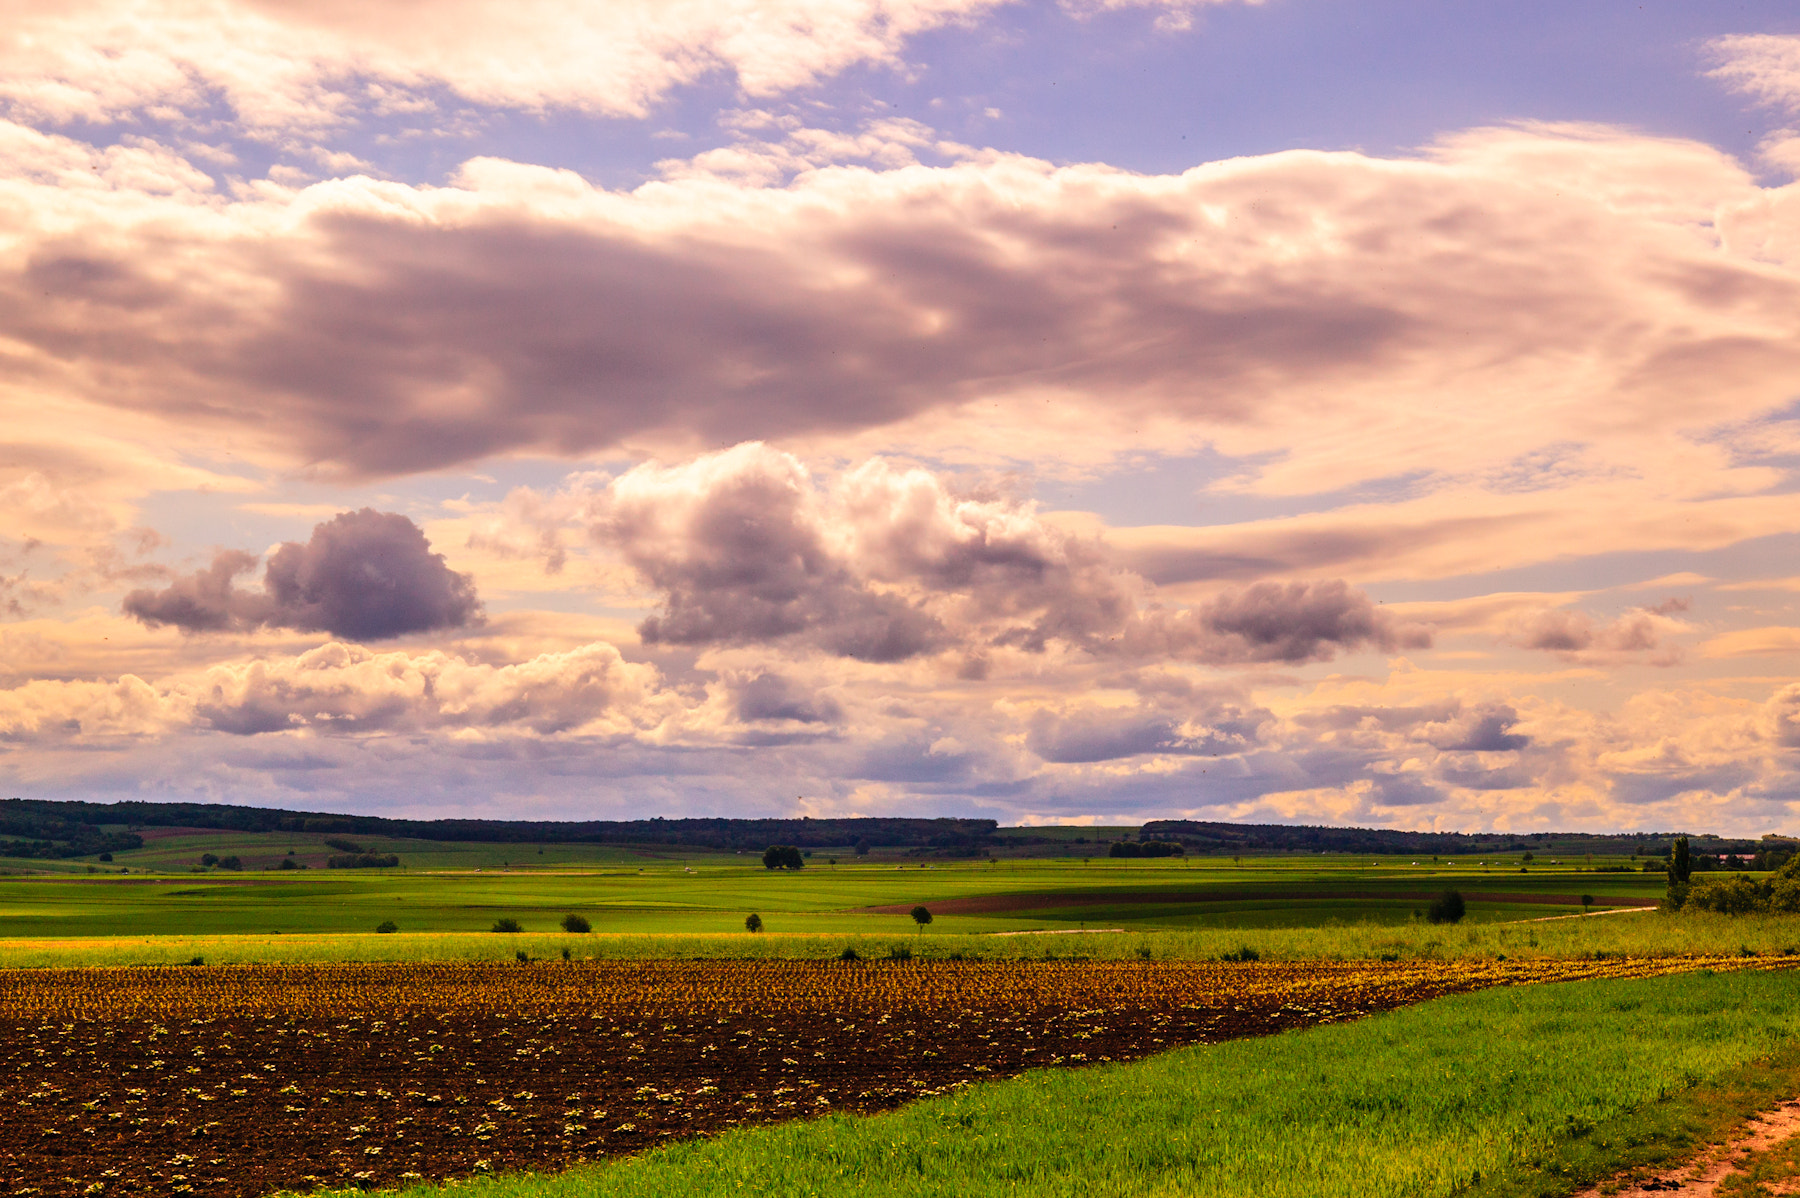 Photograph Clouds over Fields by Ernst Gamauf on 500px